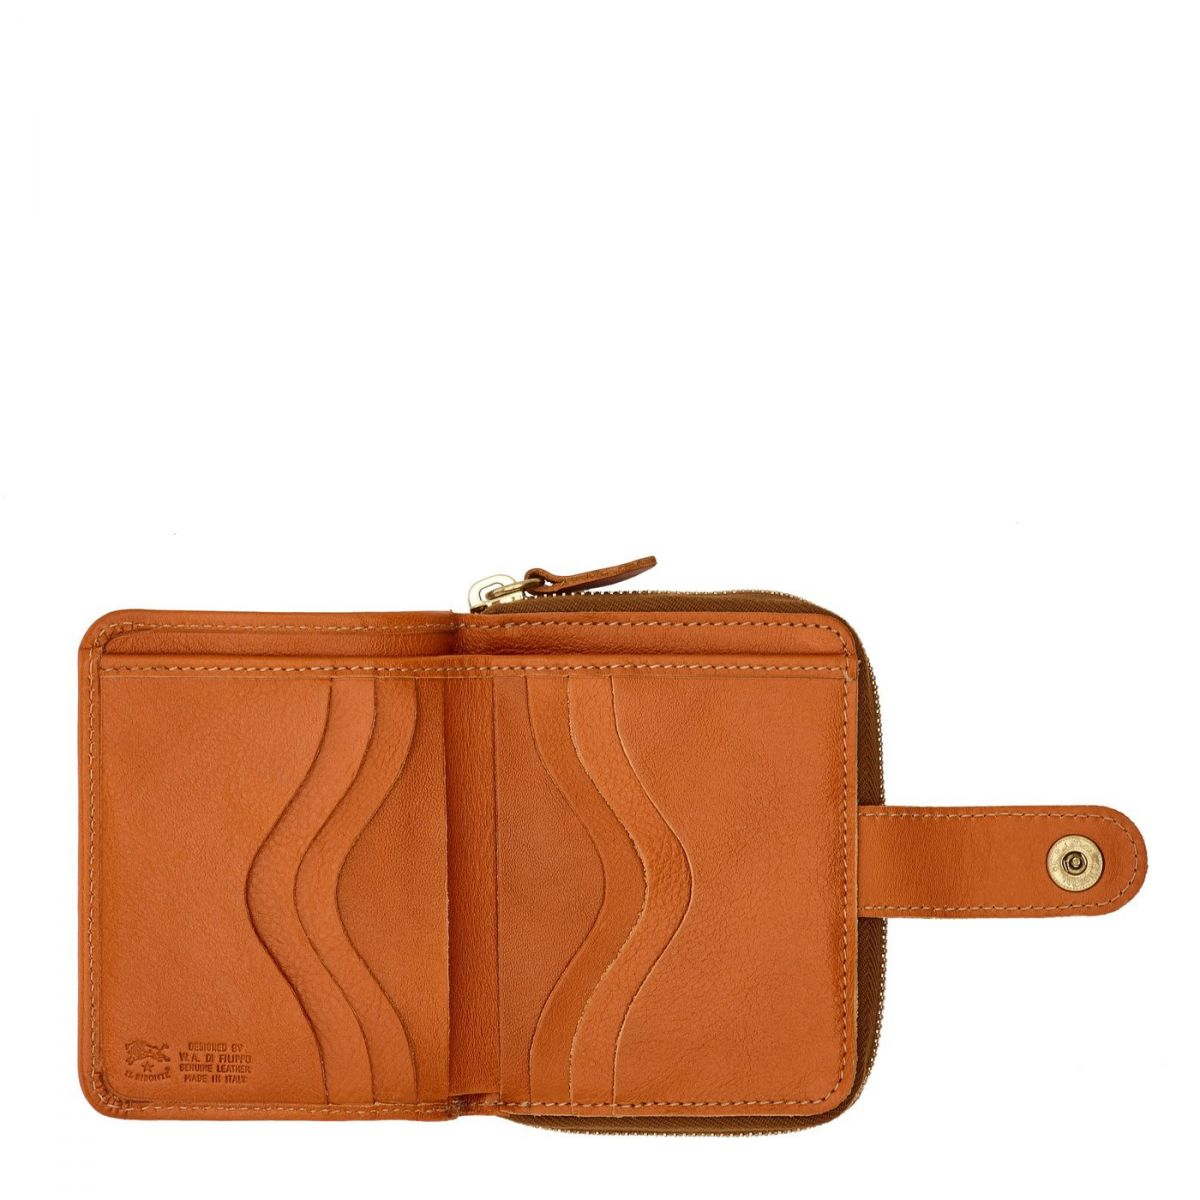 Women's Wallet  in Cowhide Double Leather SMW067 color Caramel | Details